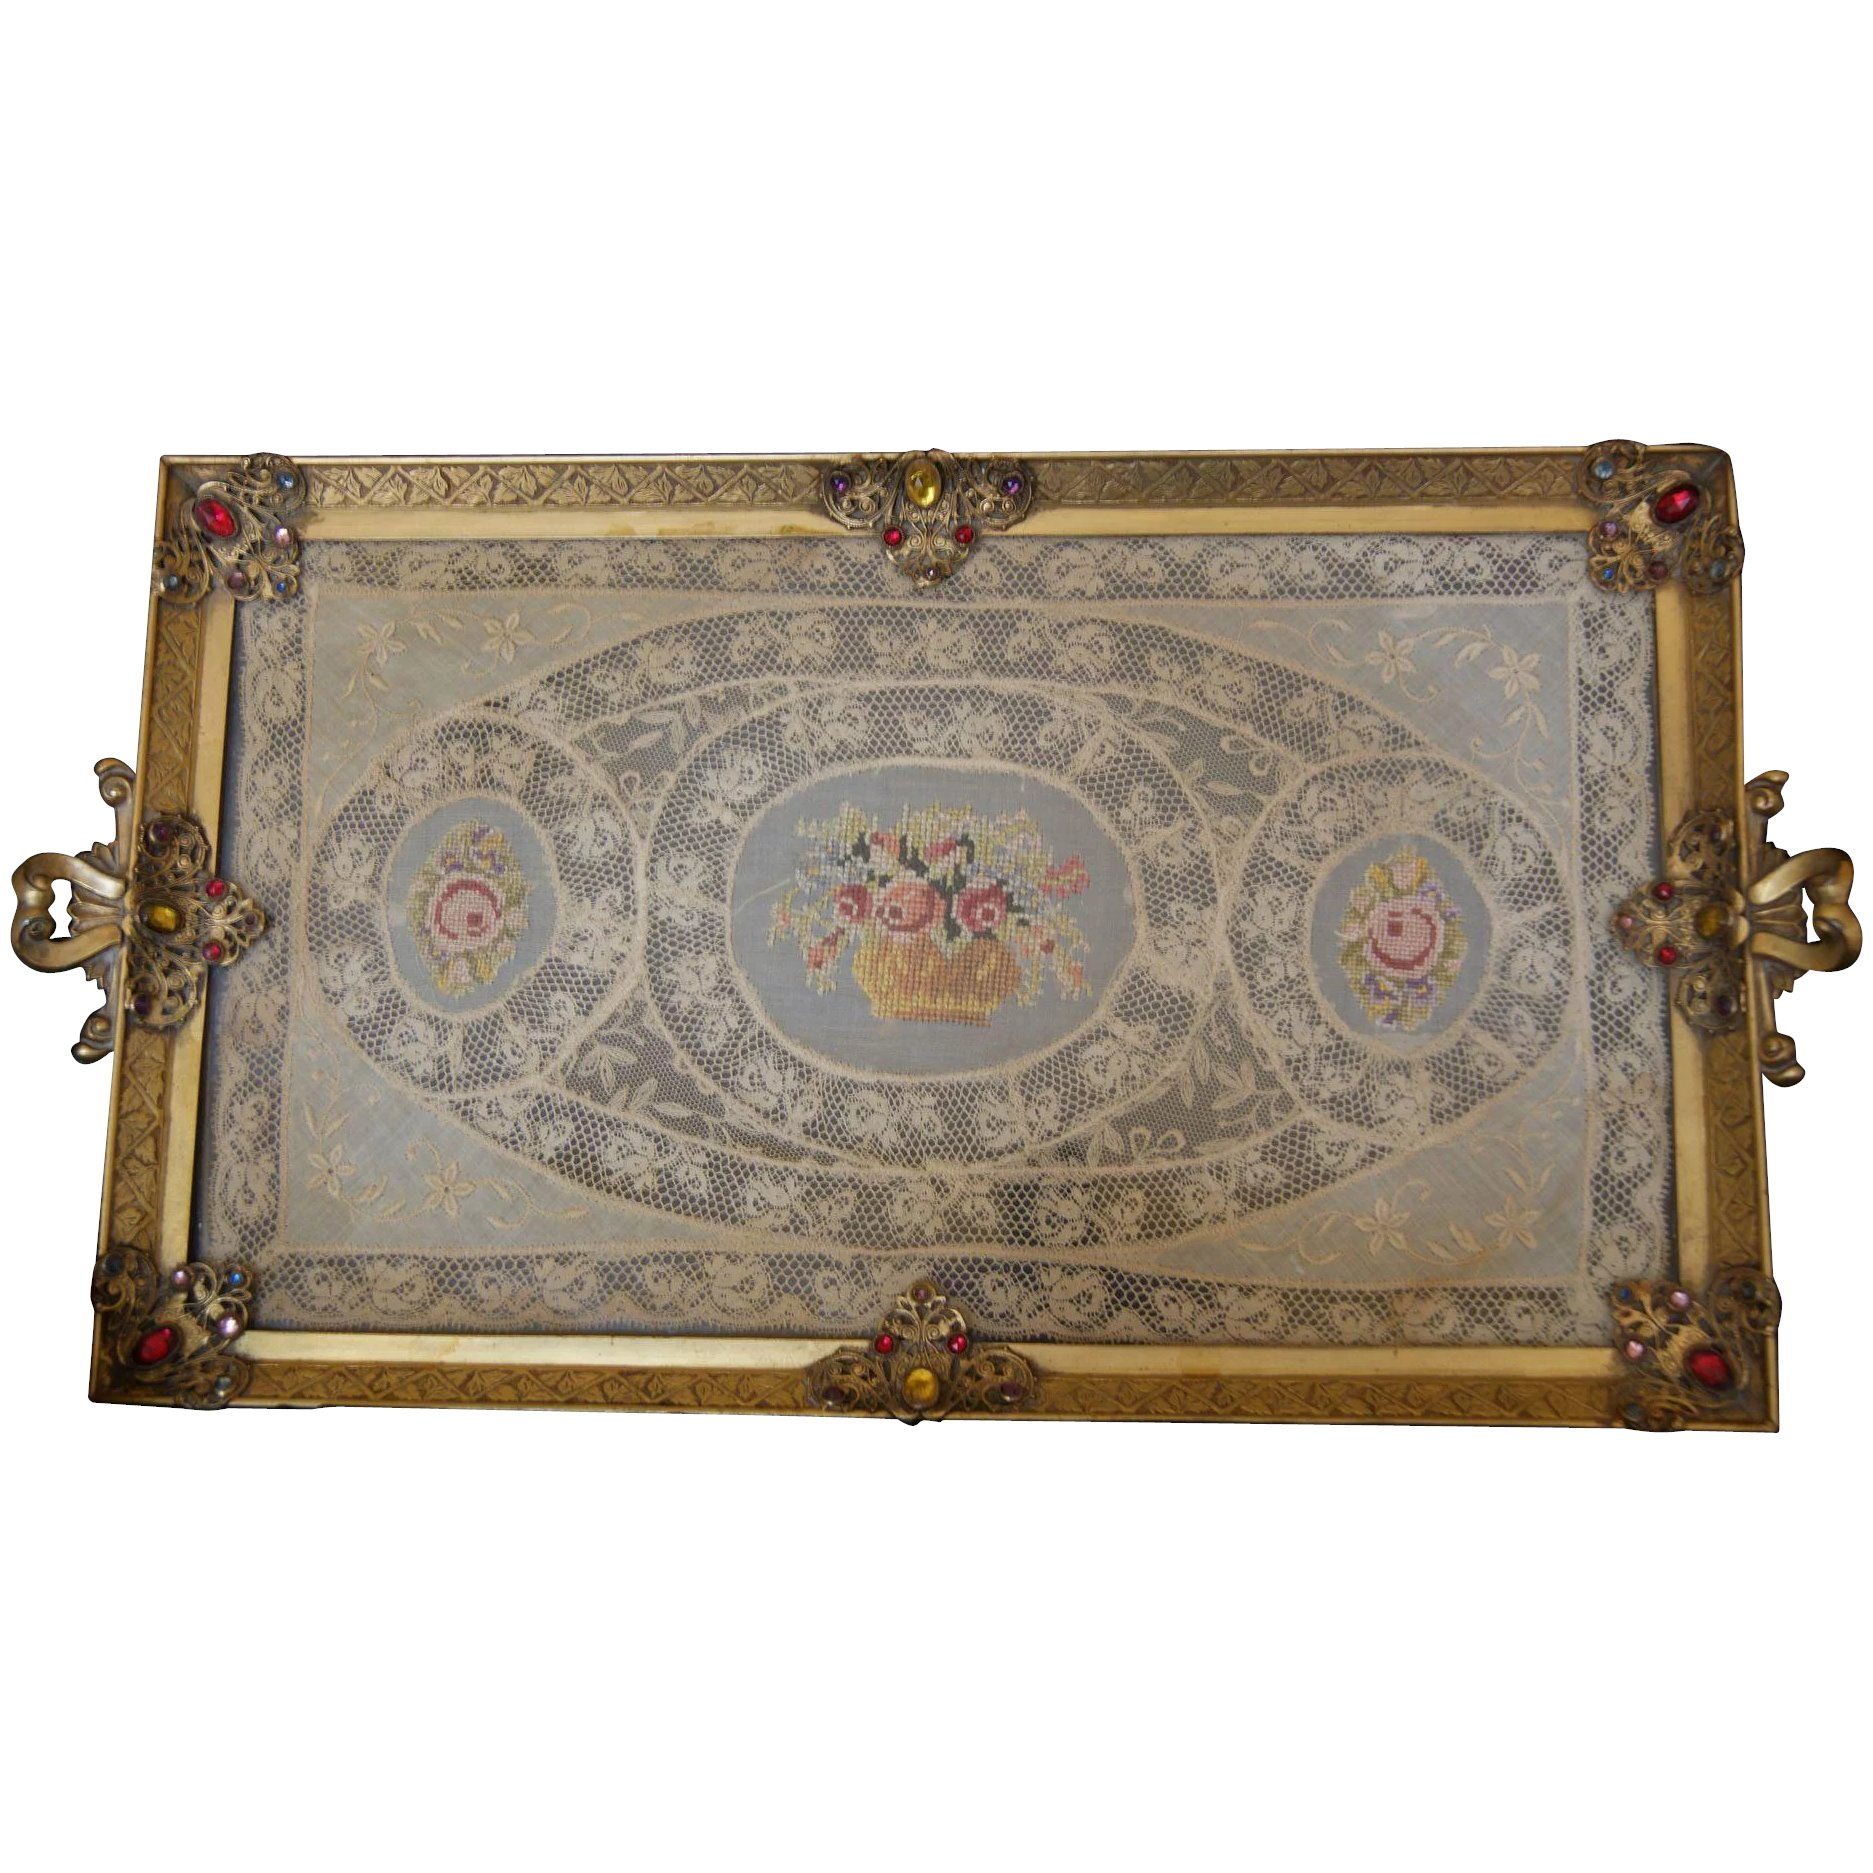 Vintage 1920 S Apollo Studios Jeweled Vanity Perfume Tray W Lace Fifi S Antique Perfume Bottles Rare Compacts Ruby Lane